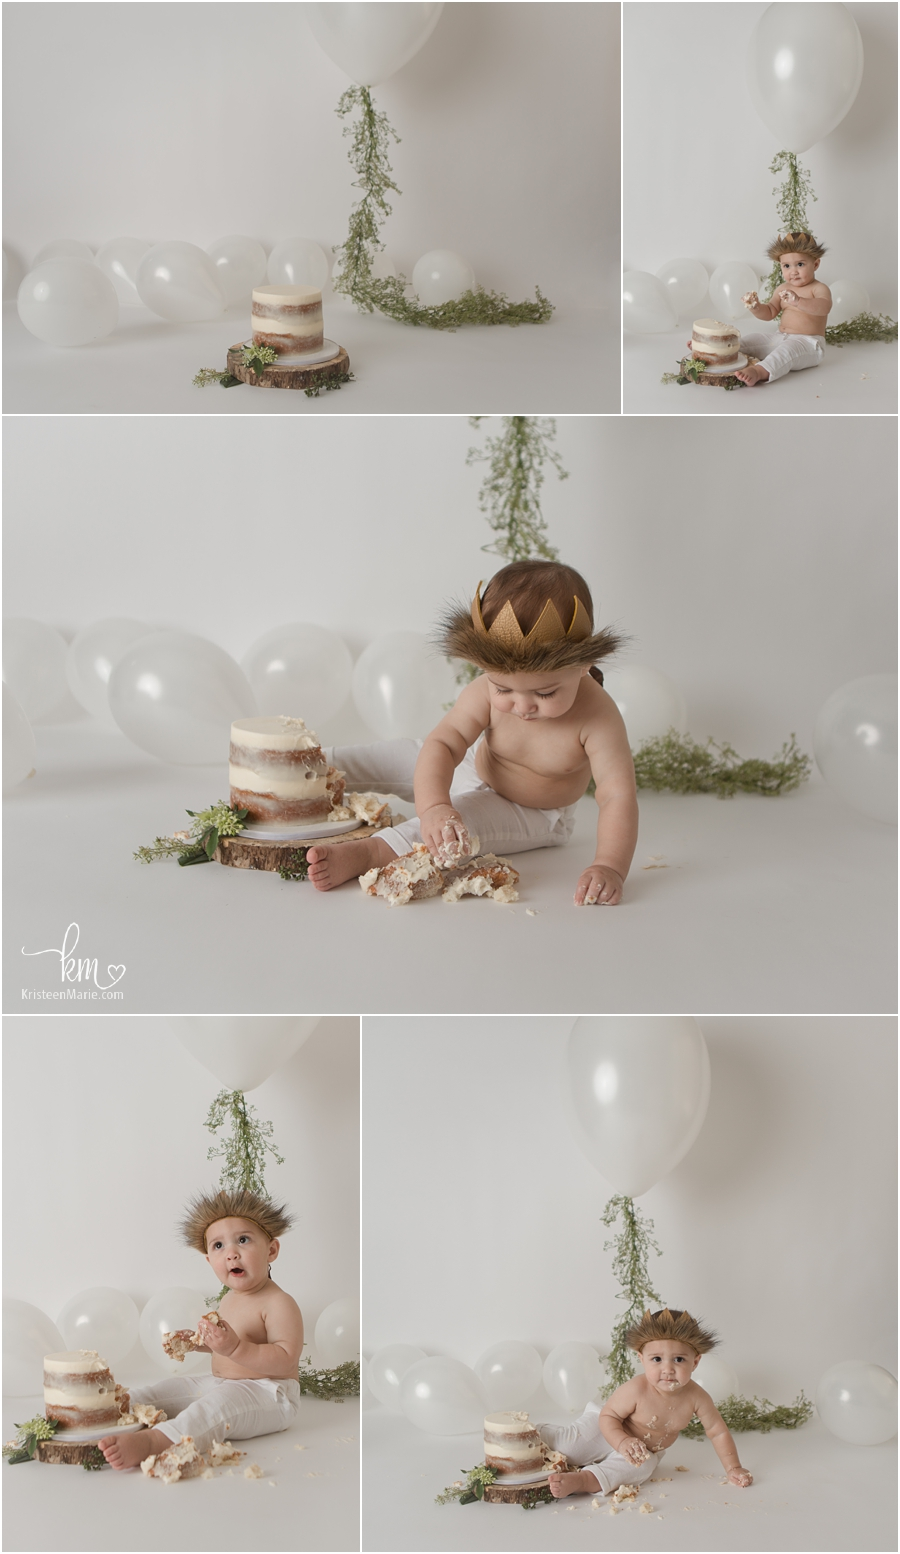 white cake smash session with greenery and balloons